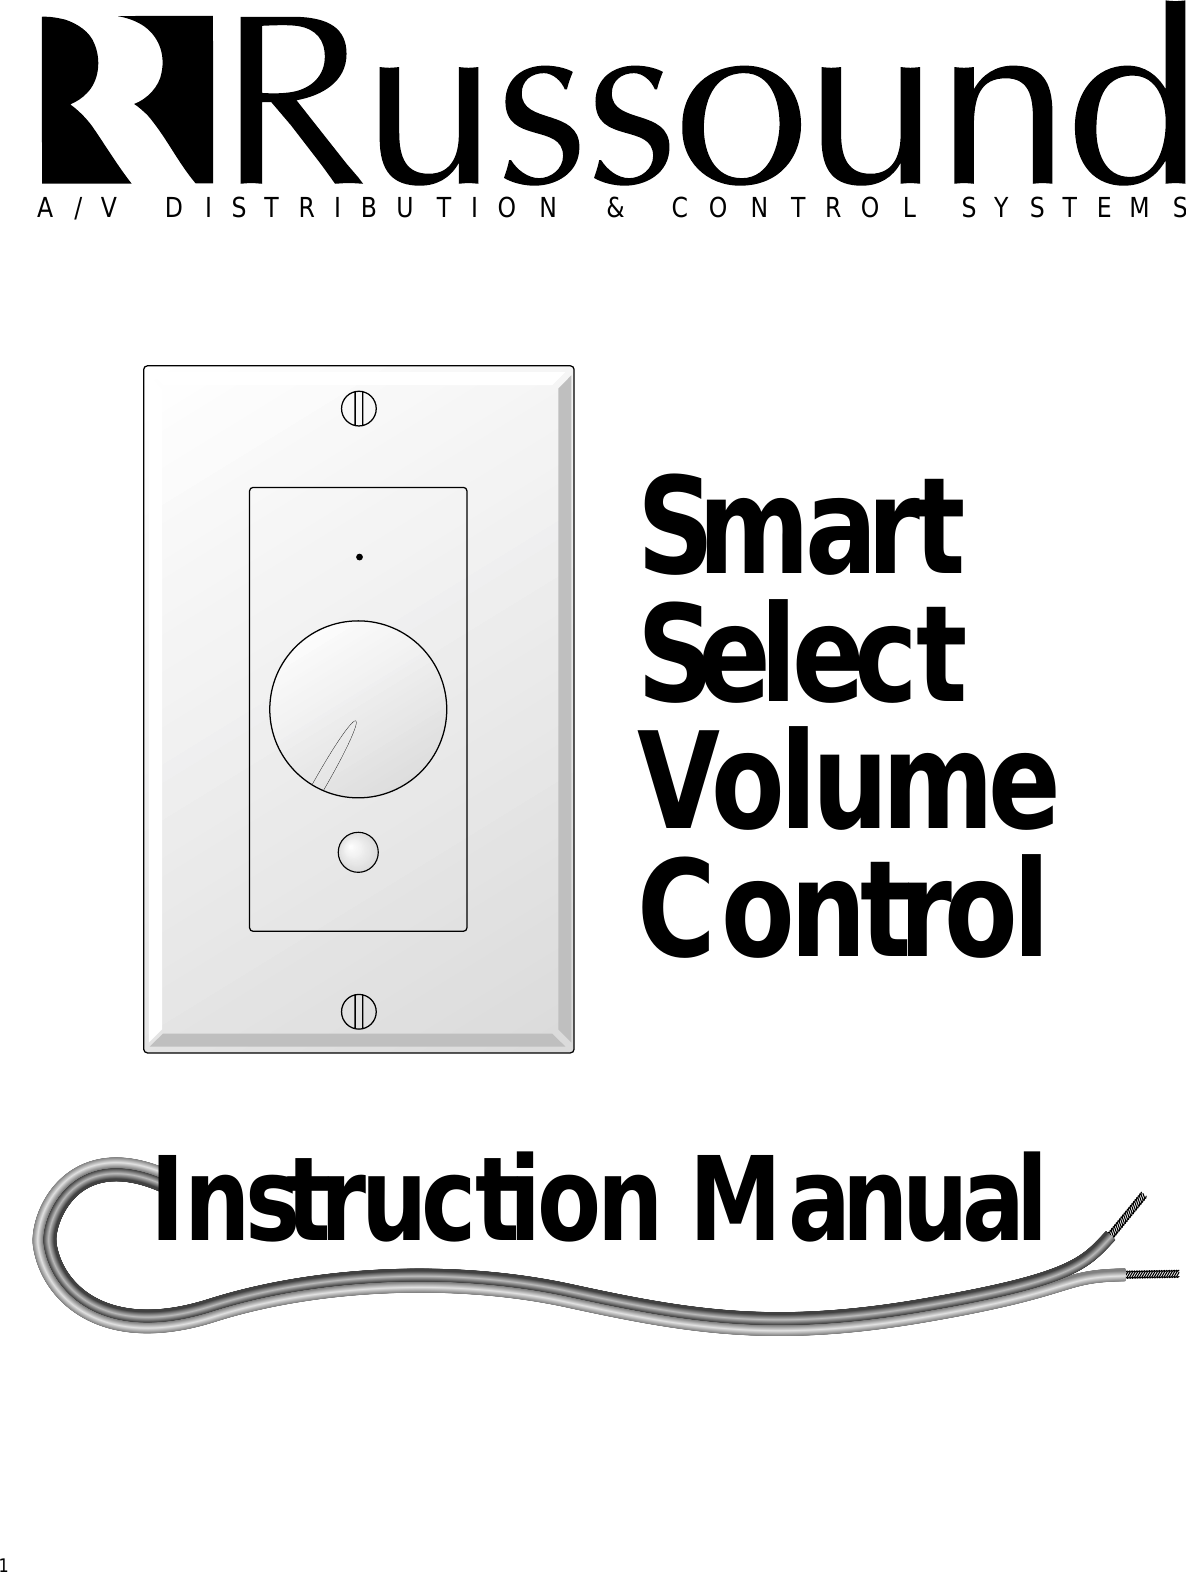 Russound Smart Select Volume Control Users Manual